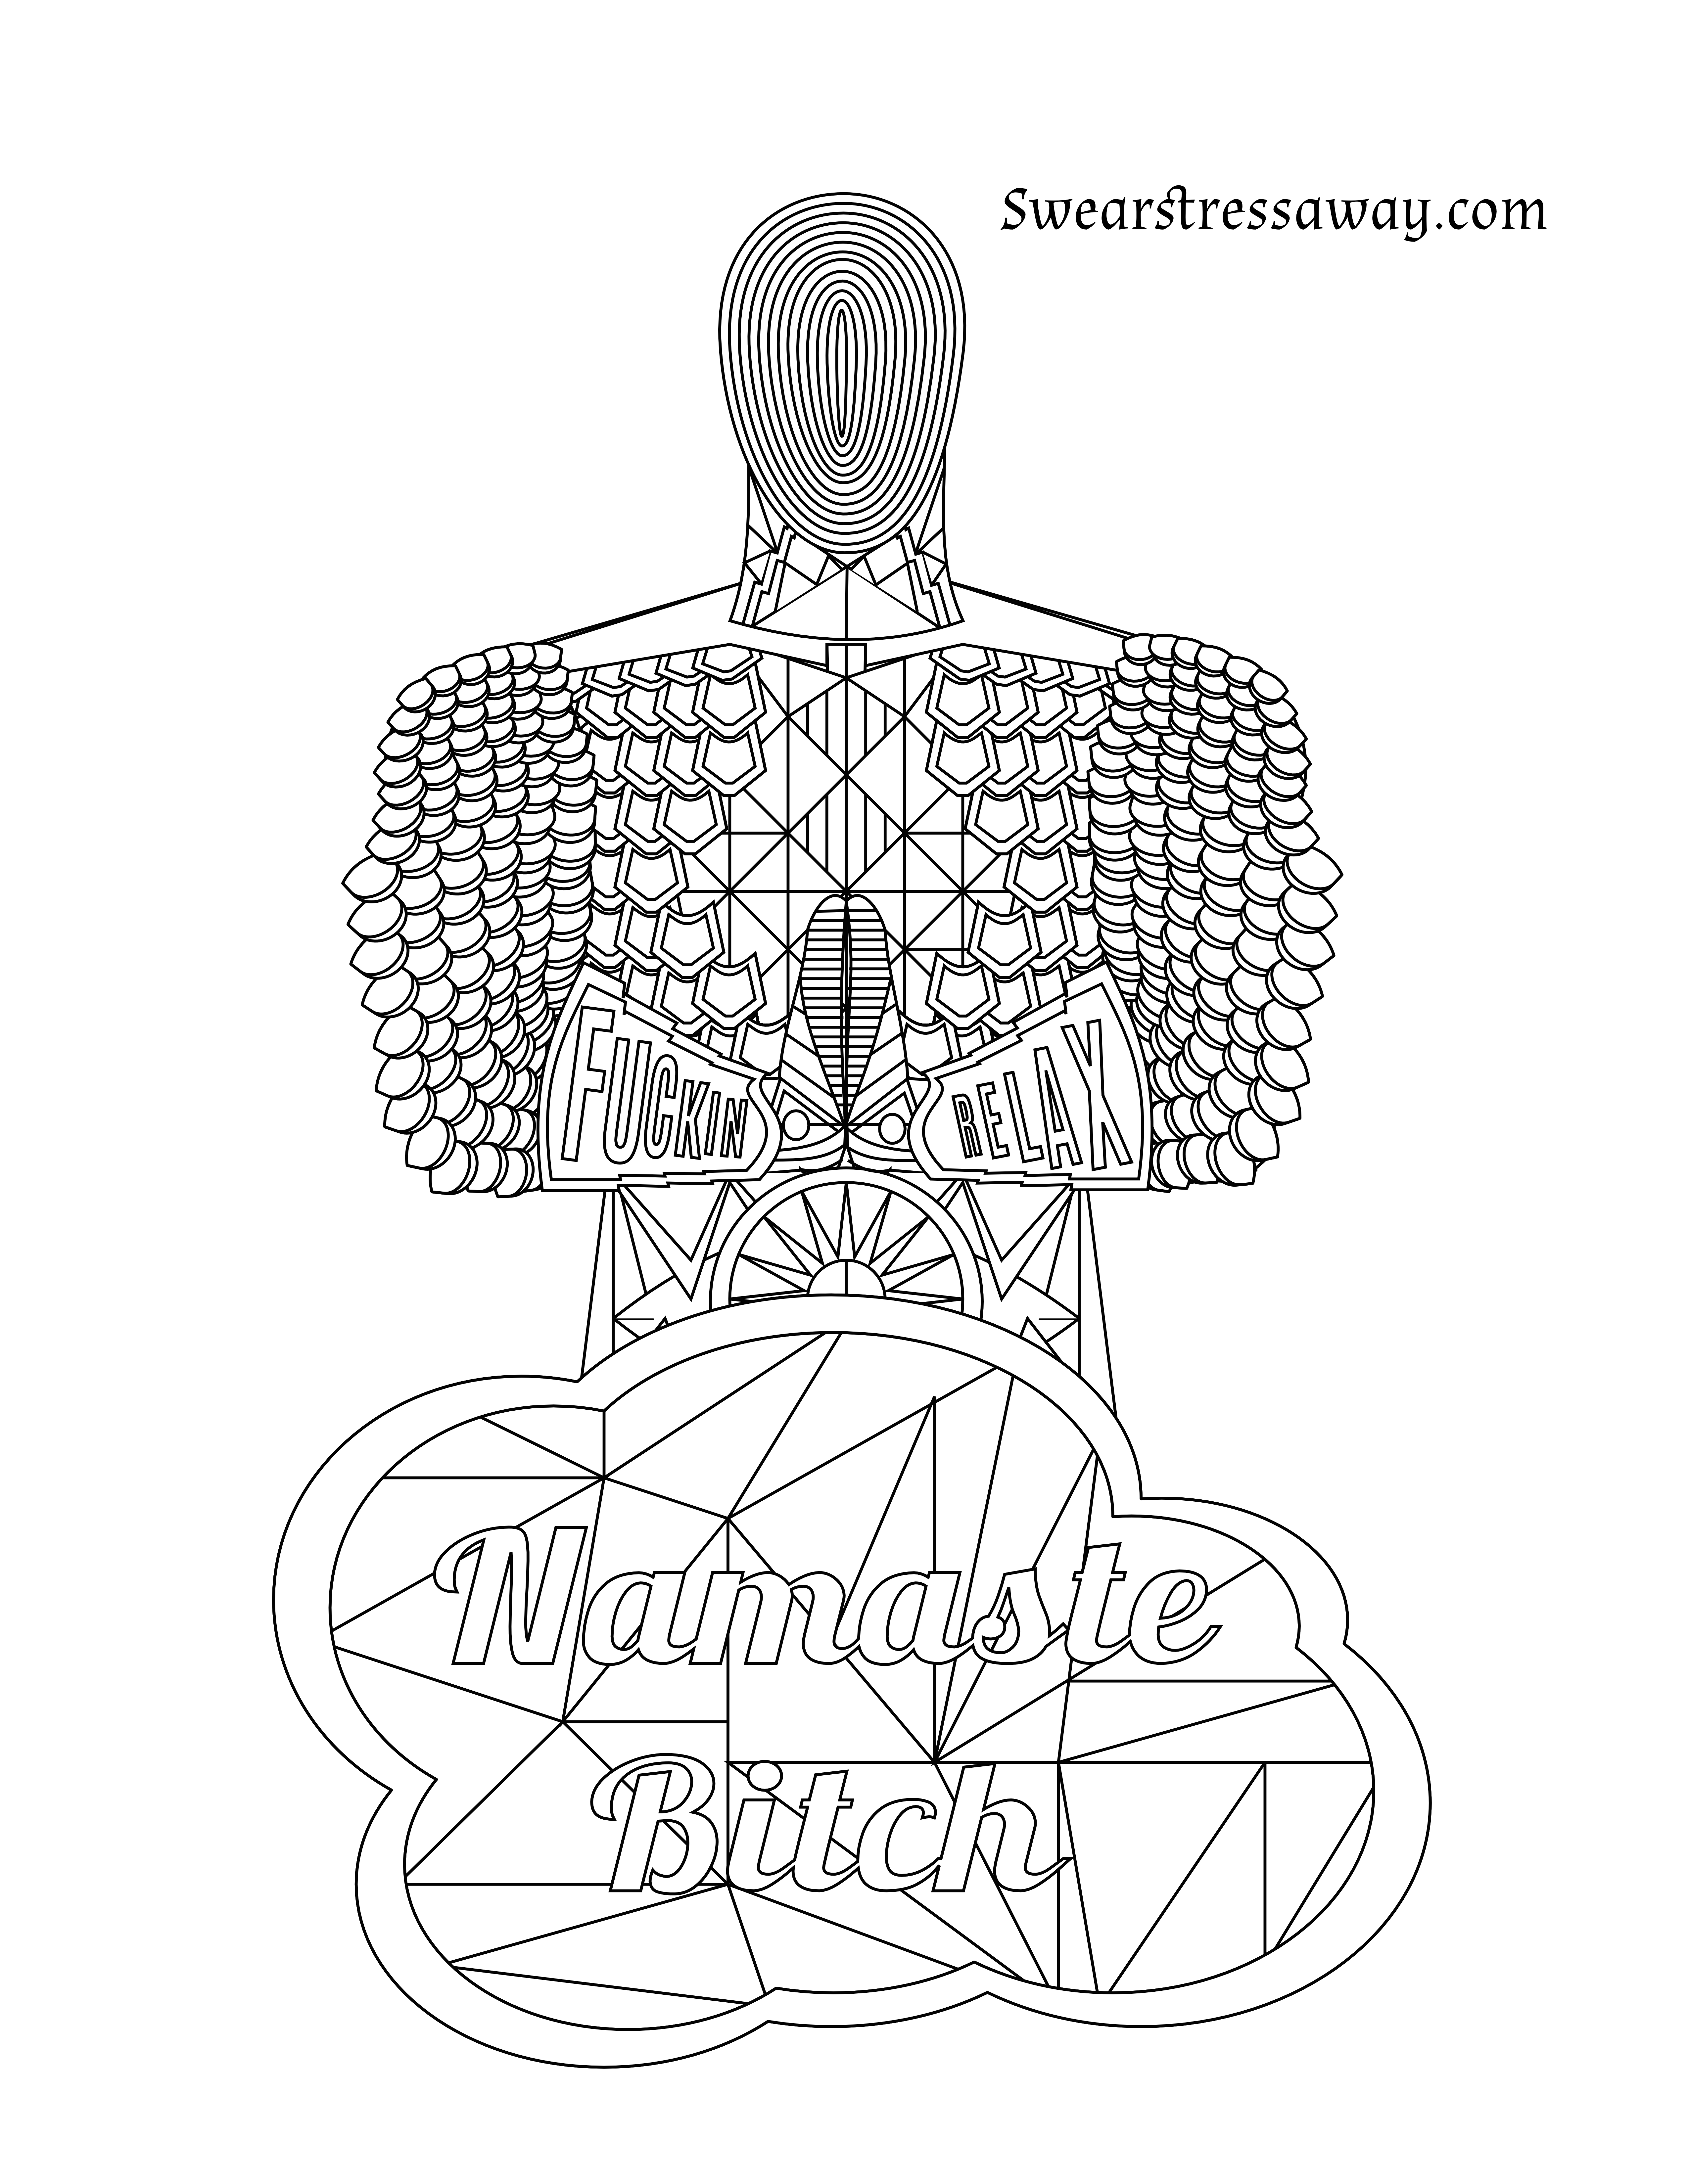 Namaste bitch swear word coloring page adult coloring page swearstressaway com